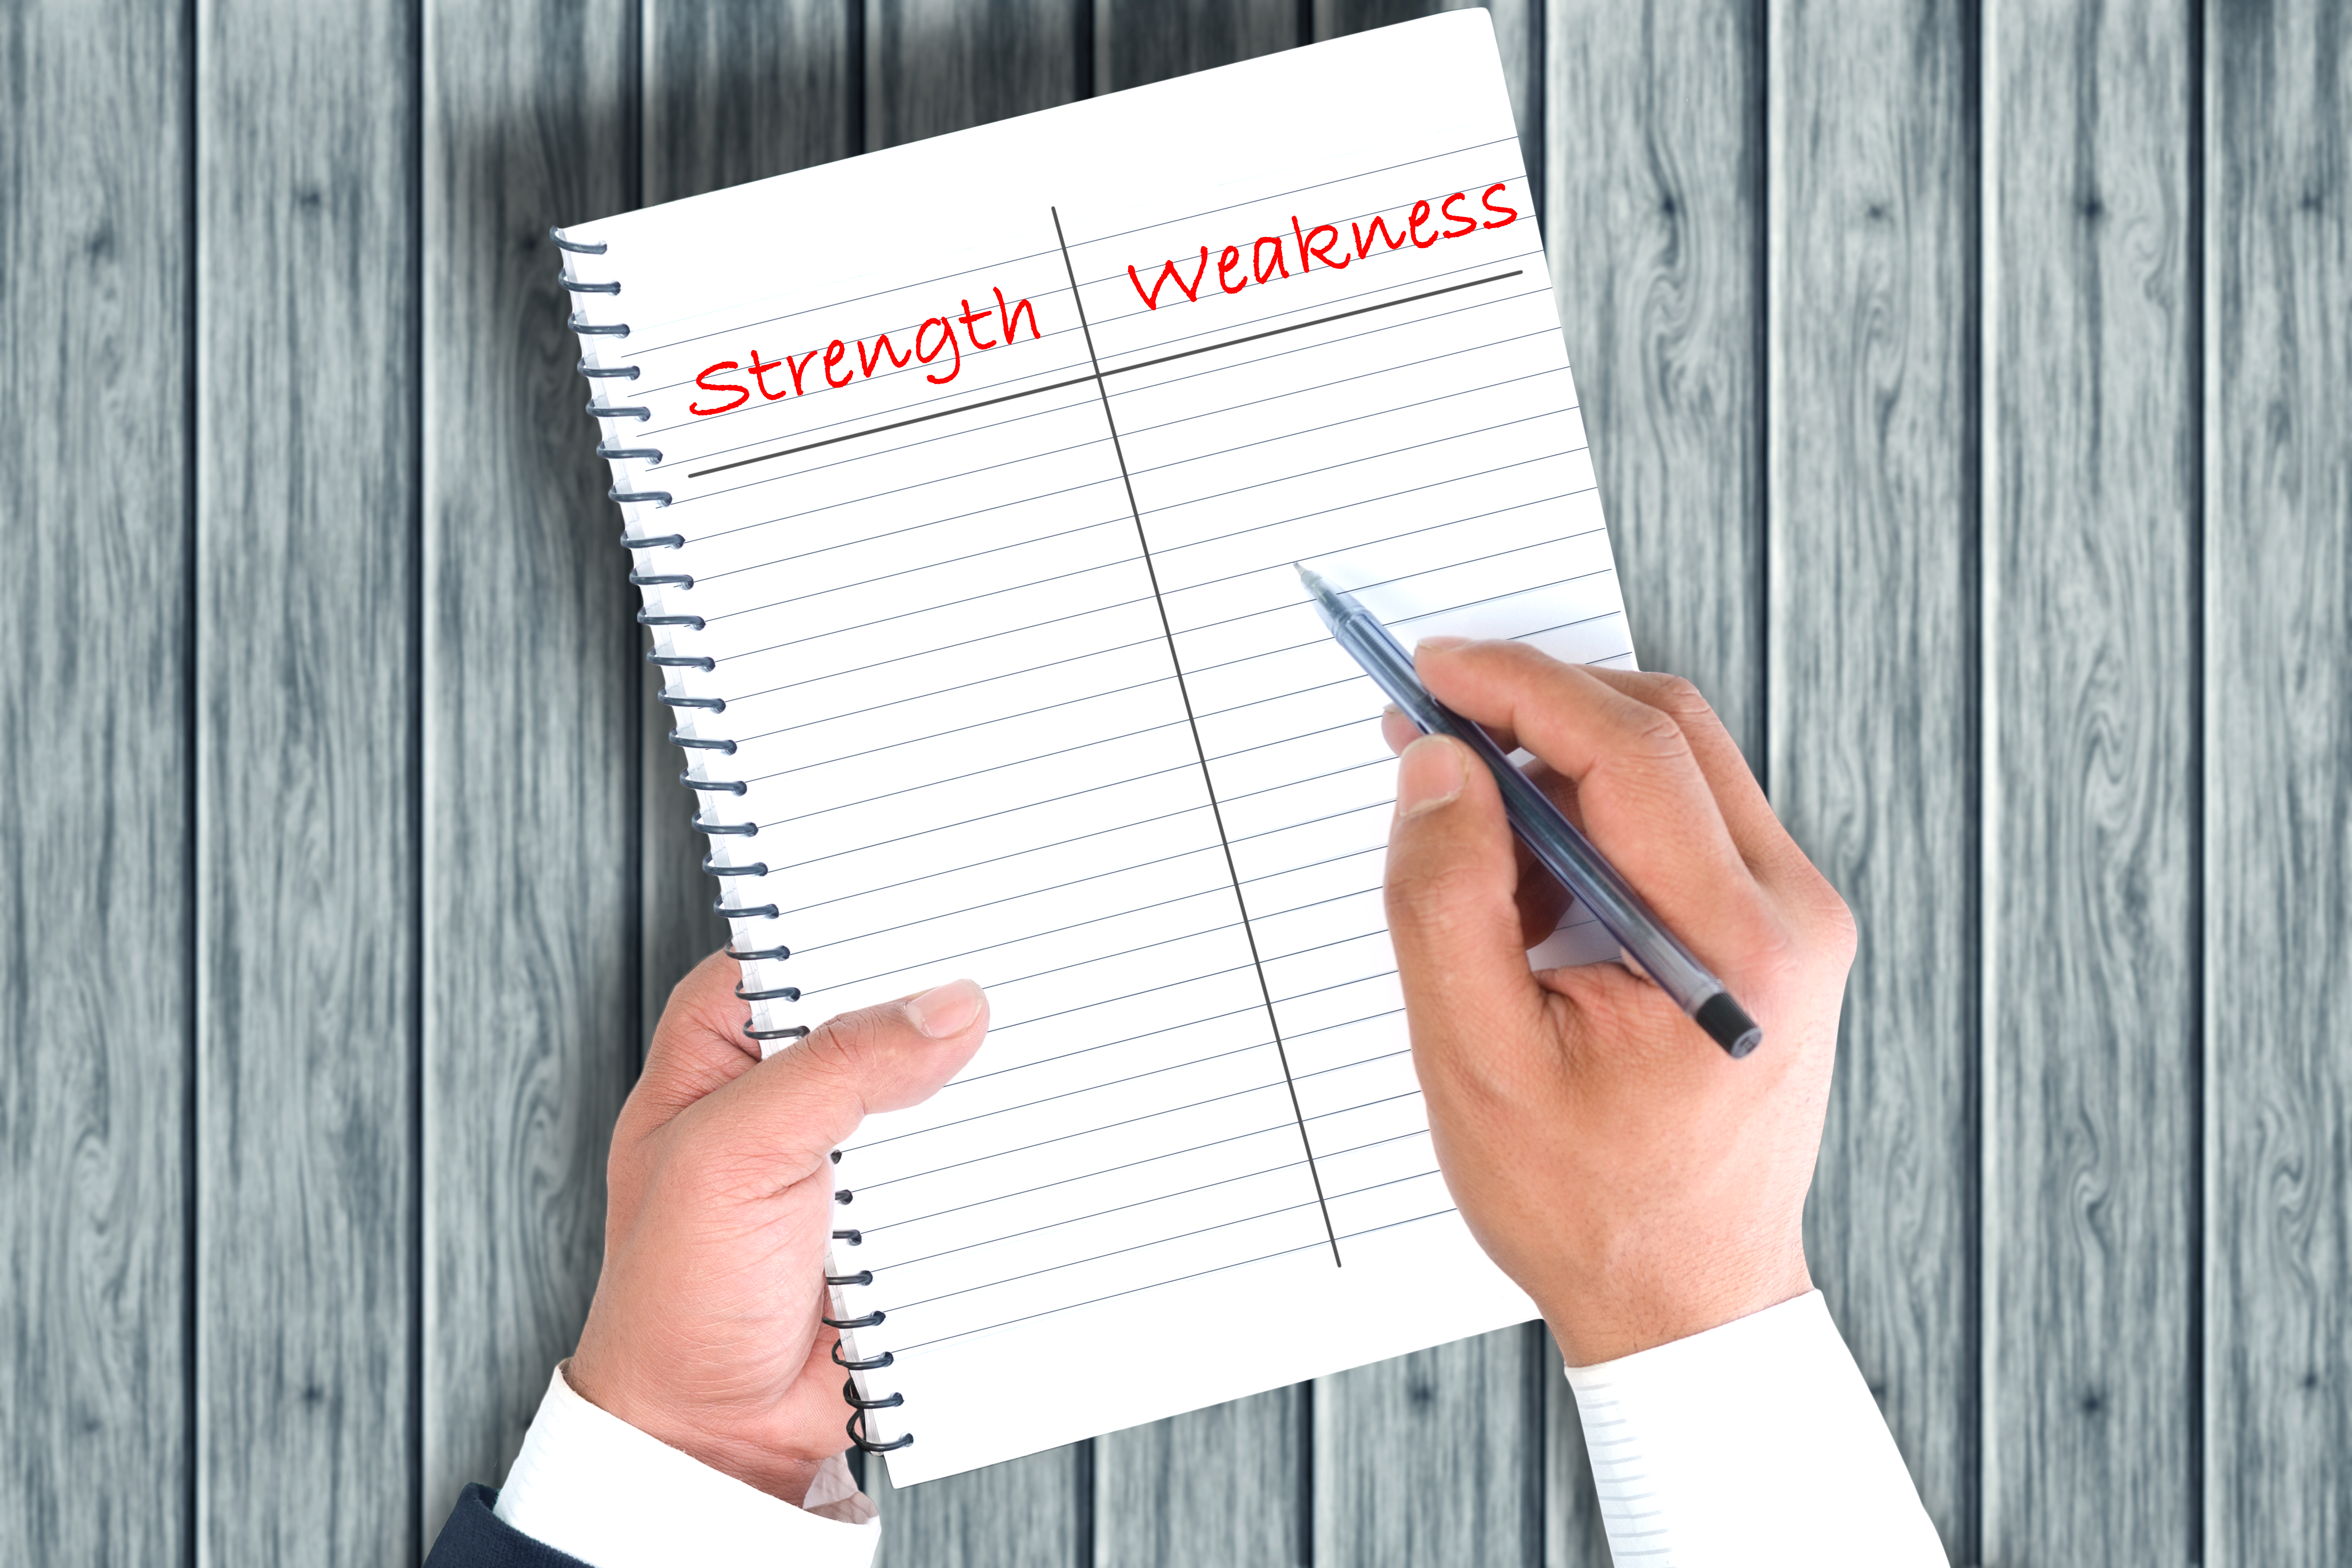 Categorizing Strength and Weakness